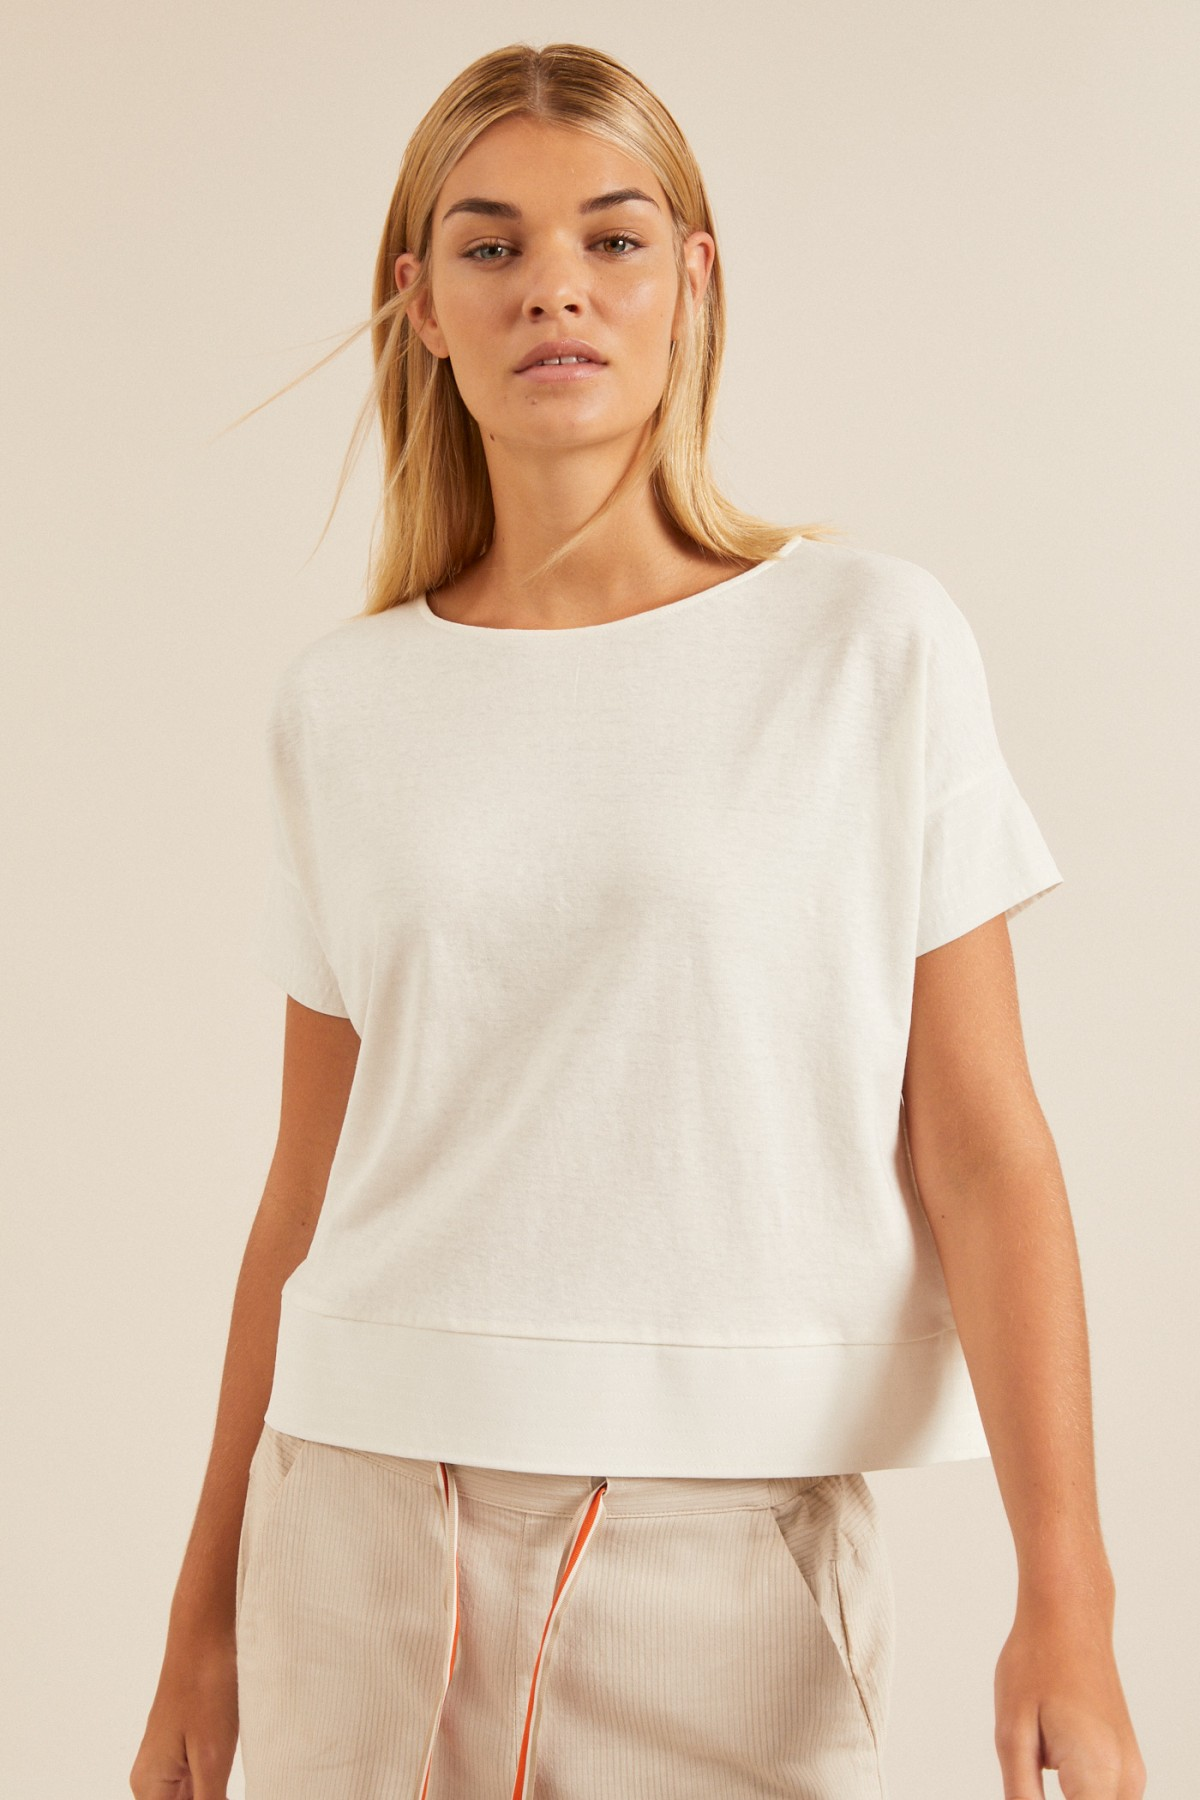 SHIRT with silk insert made of hemp with organic cotton